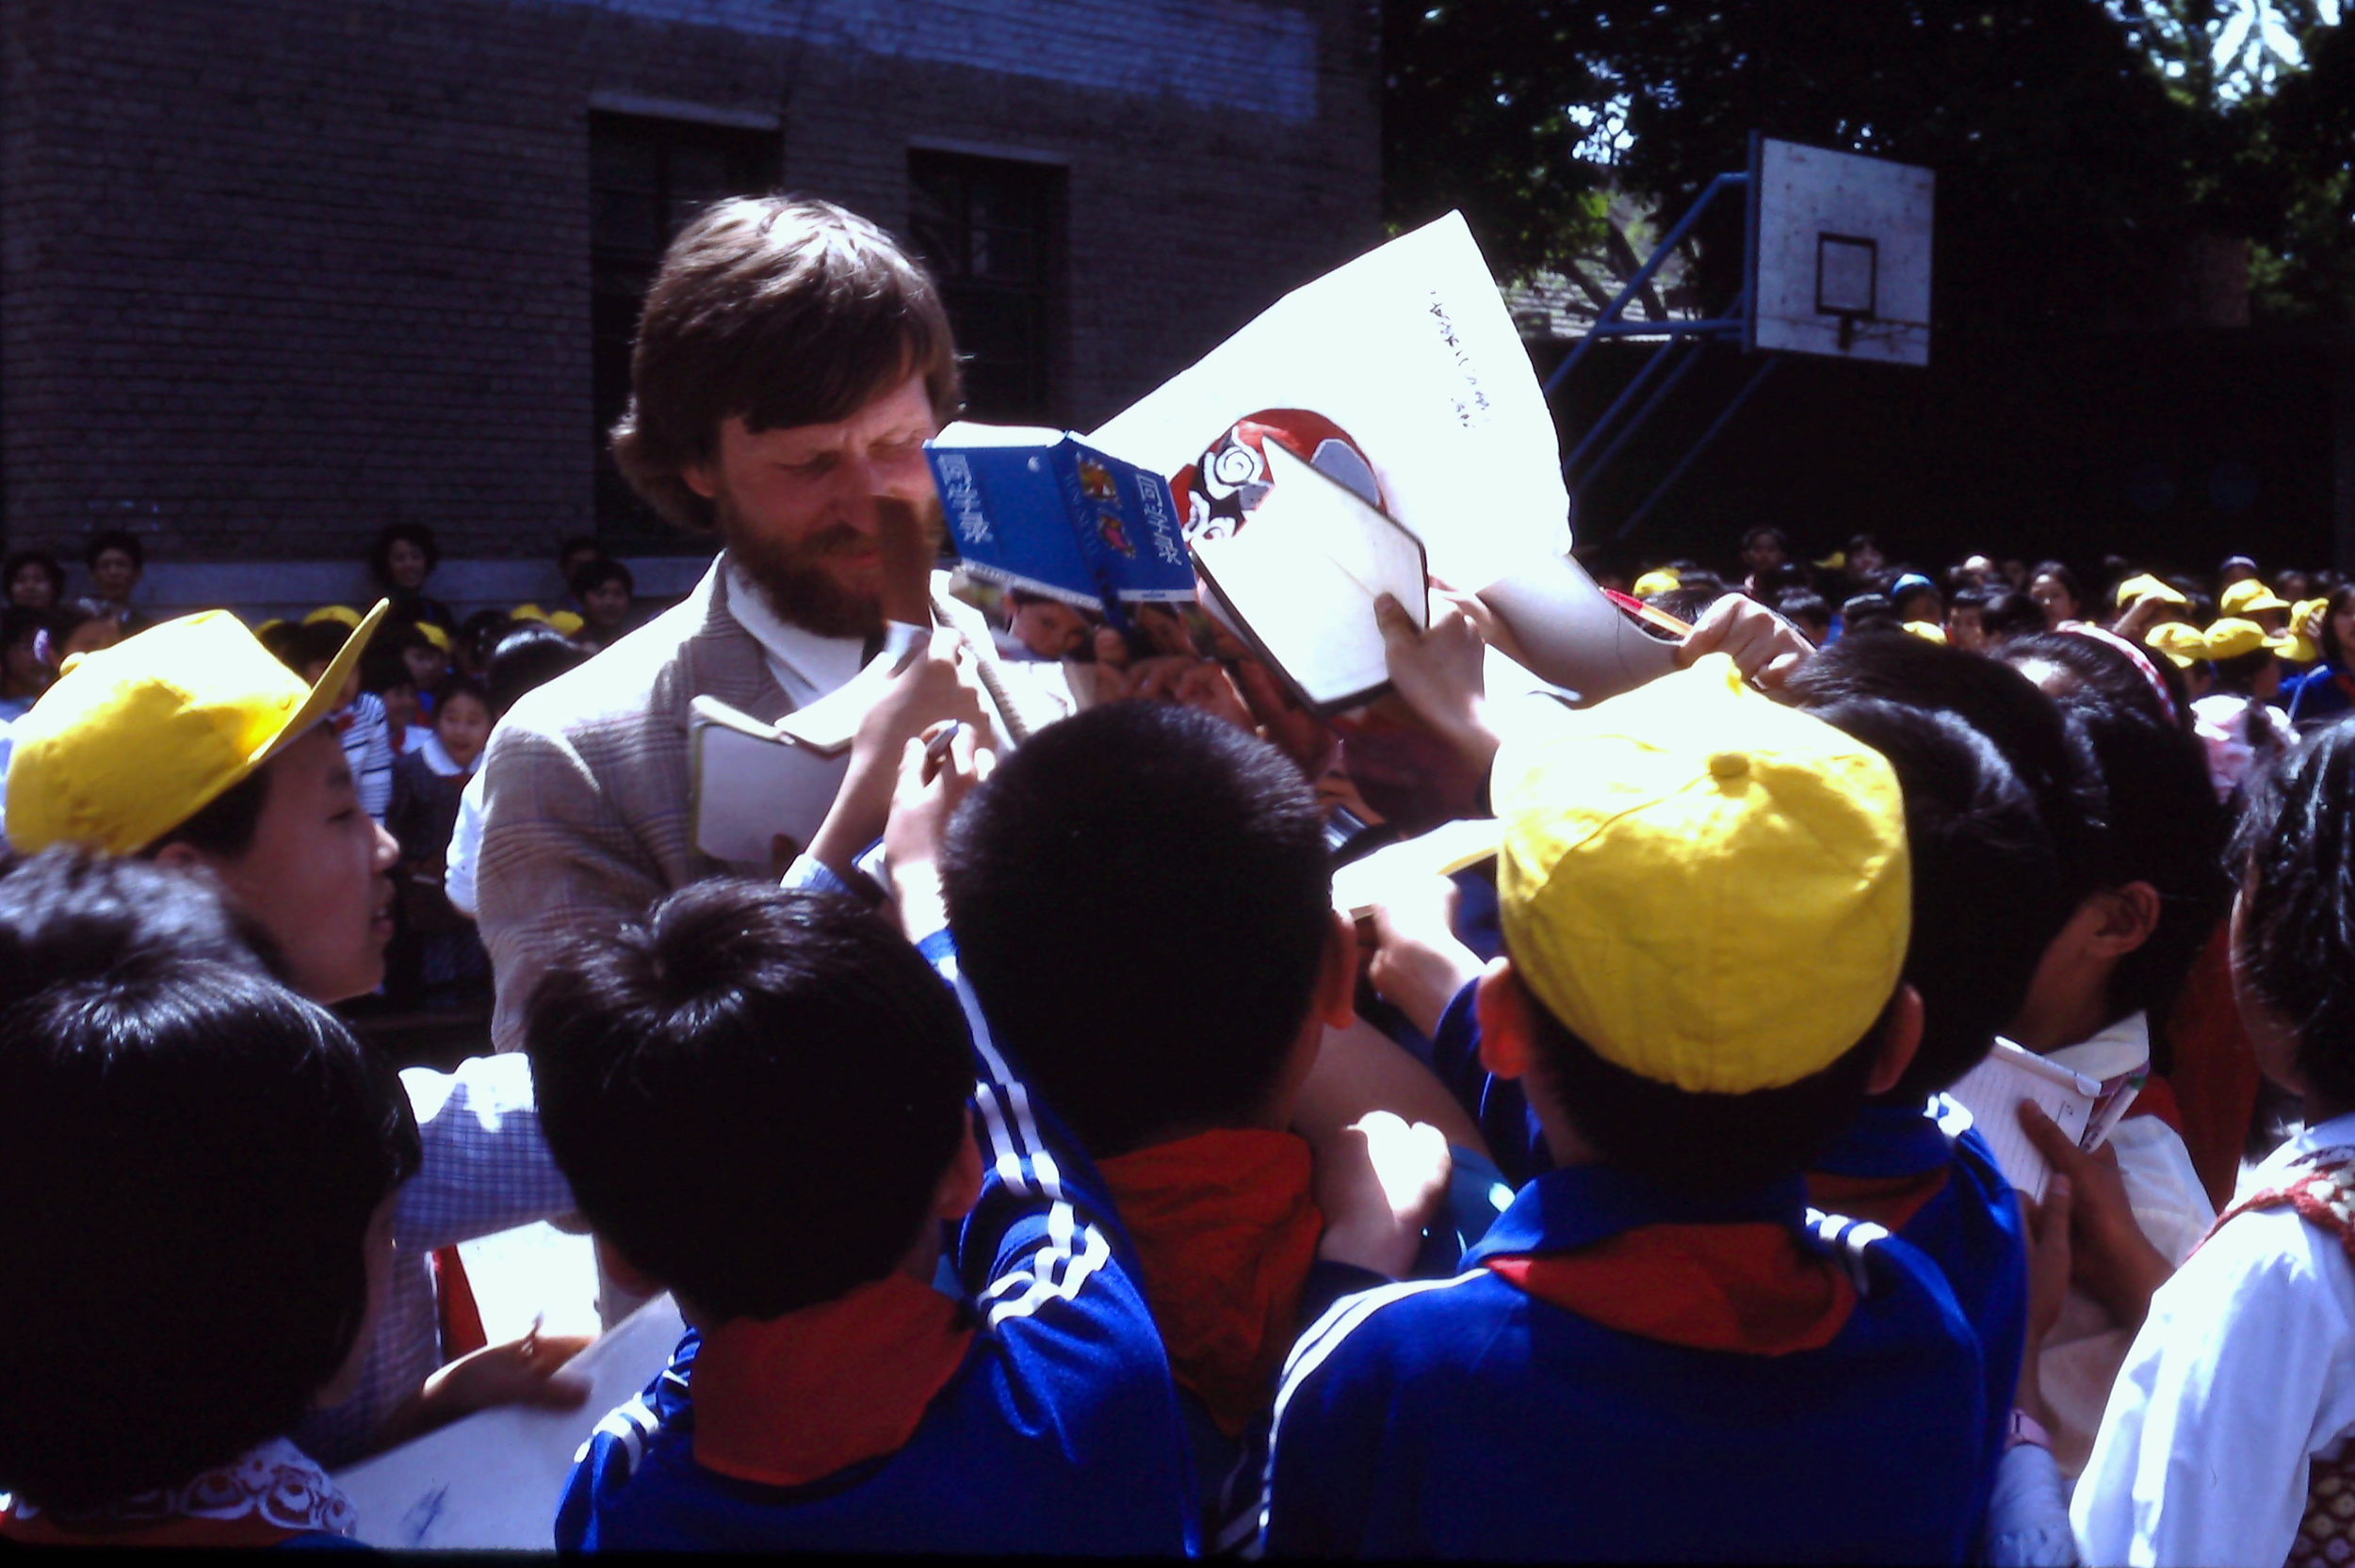 Trans-Antarctica team member Victor Boyarsky signs autographs in a Beijing schoolyard, May 1990. Photo: Cynthia Mueller.